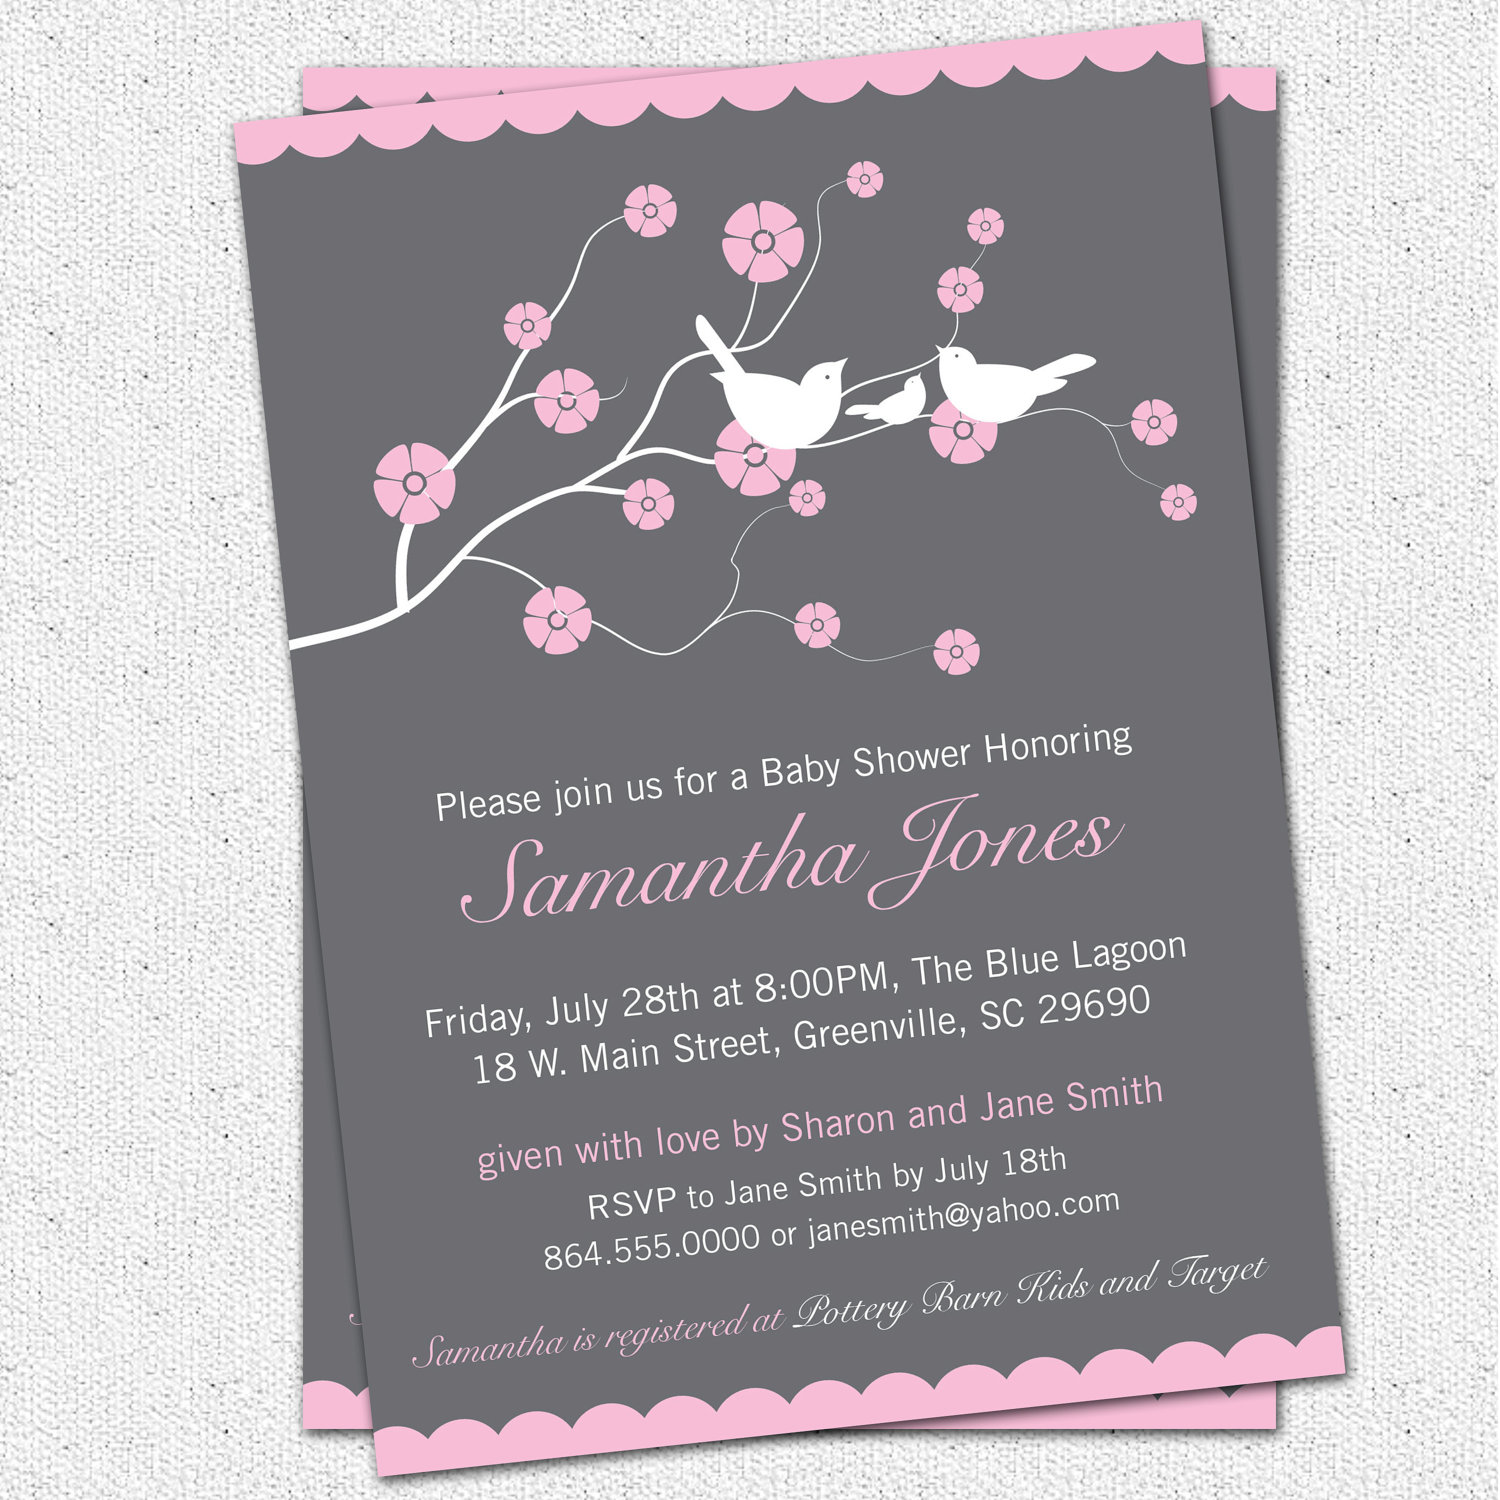 Baby Shower Invitations, Cherry Blossom, Birds, Girl, Pink, Charcoal ...